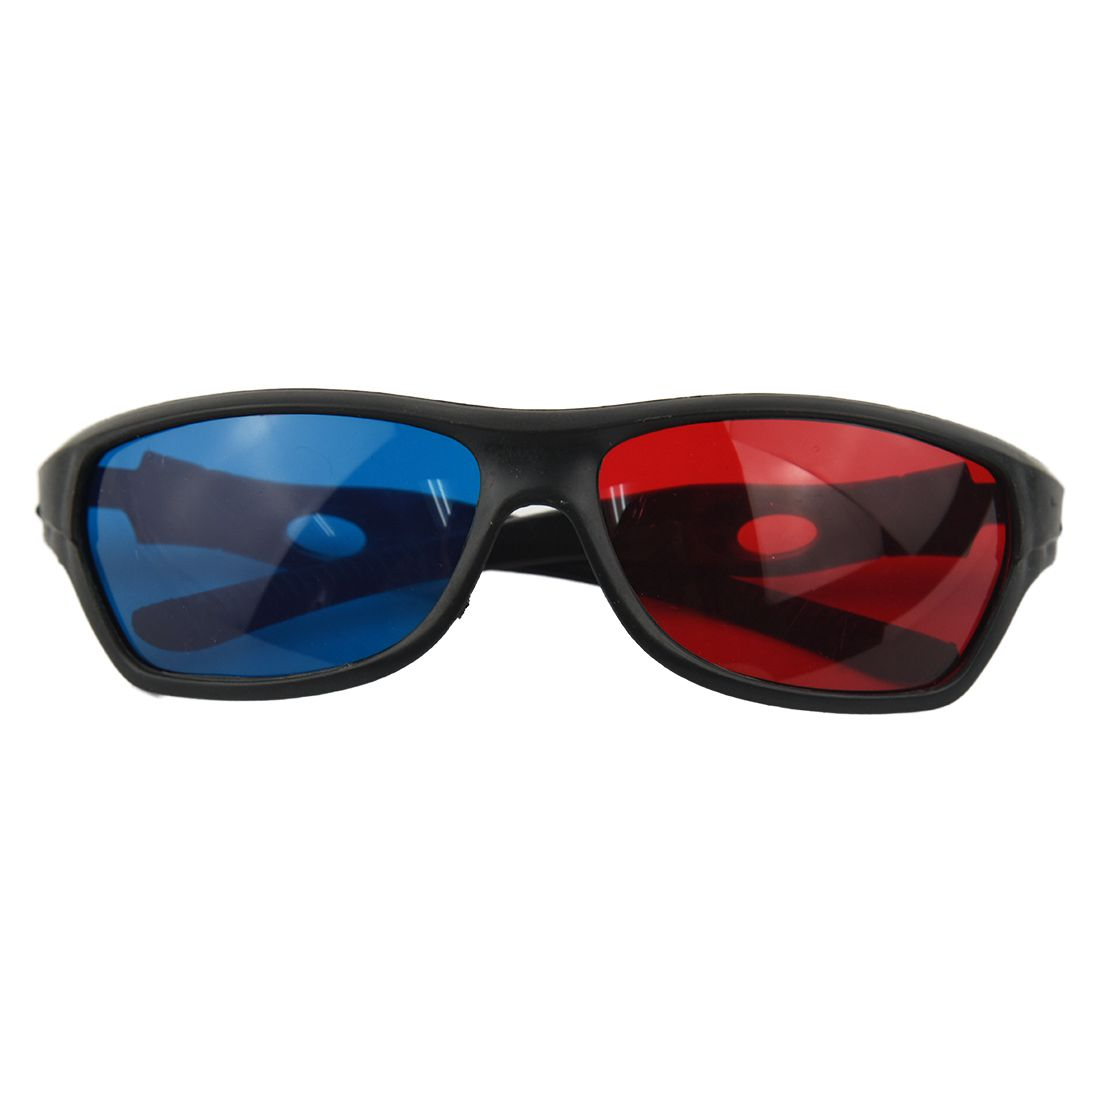 HOT-Fasdga 3D Plastic glasses/VR glasses Red-blue Anaglyph Simple style 3D Glasses 3D movie game (Extra Upgrade Style) ...